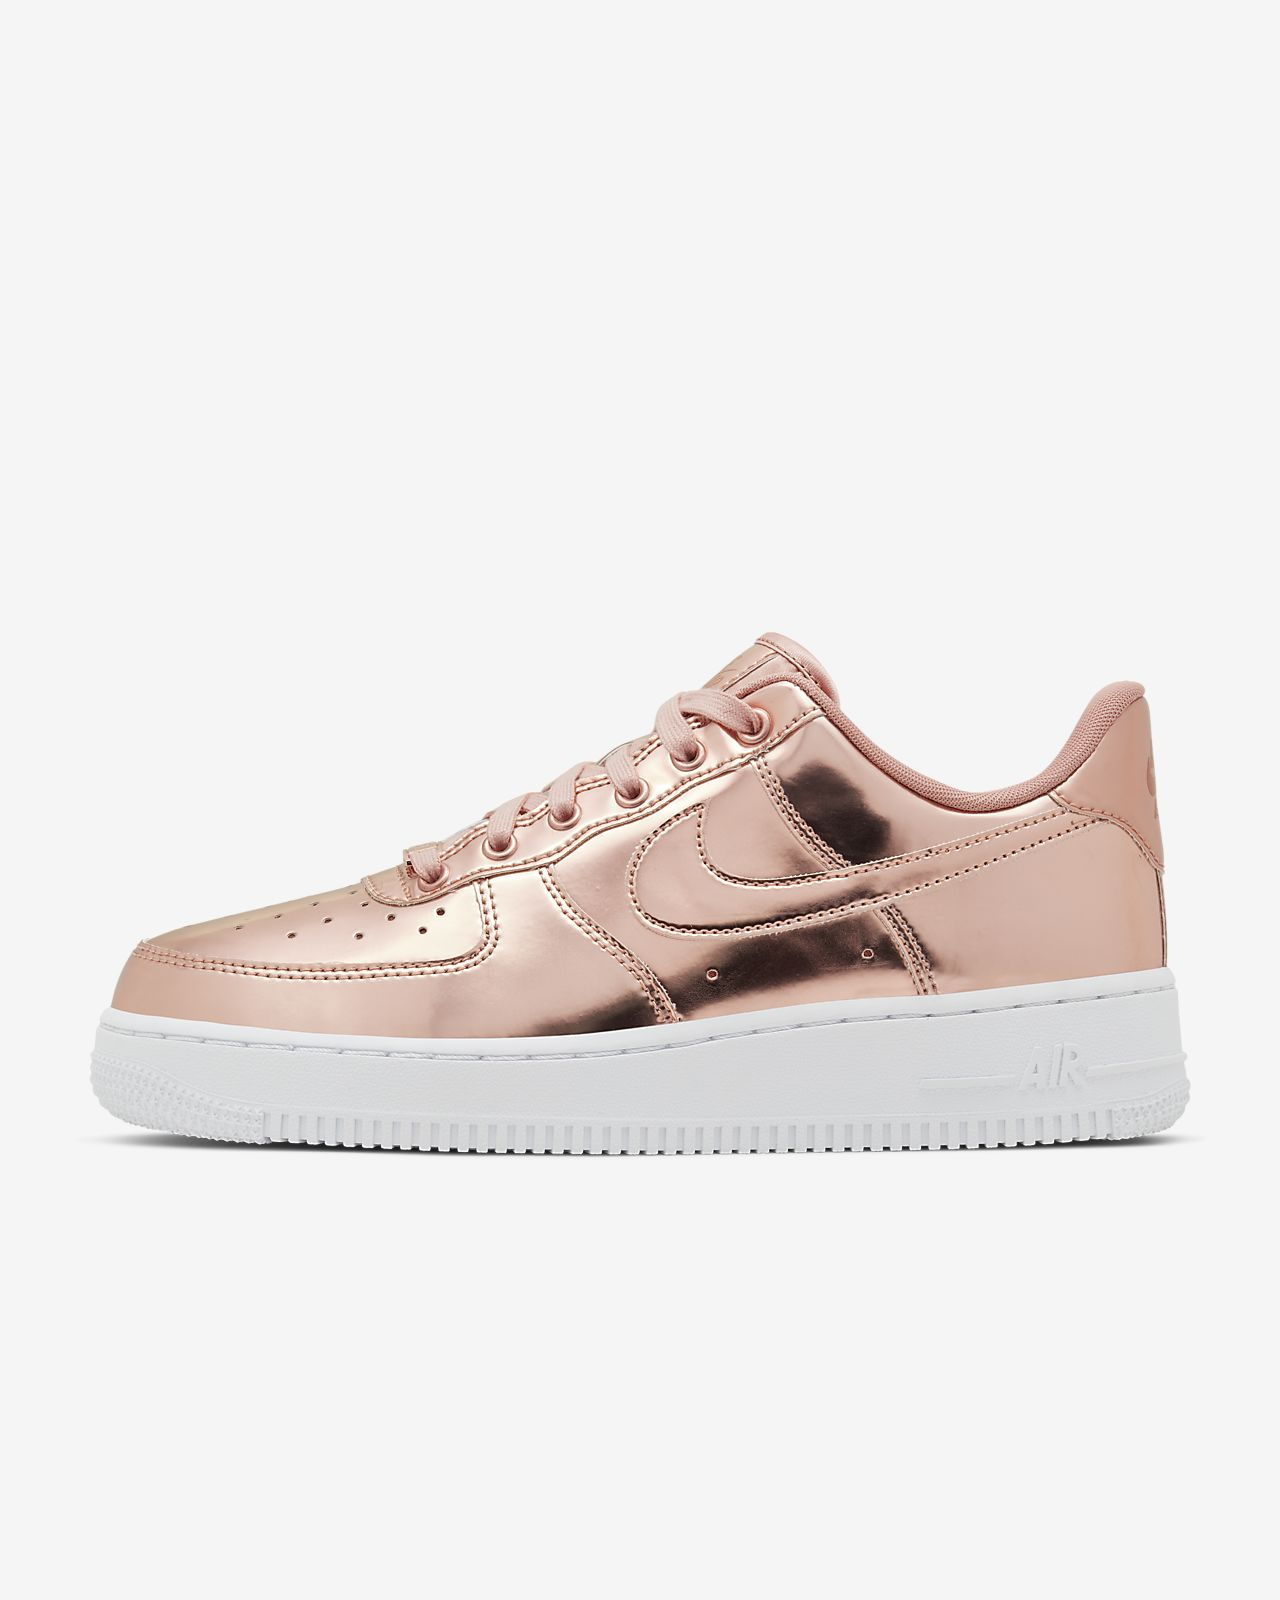 Nike Air Force 1 SP Damenschuh